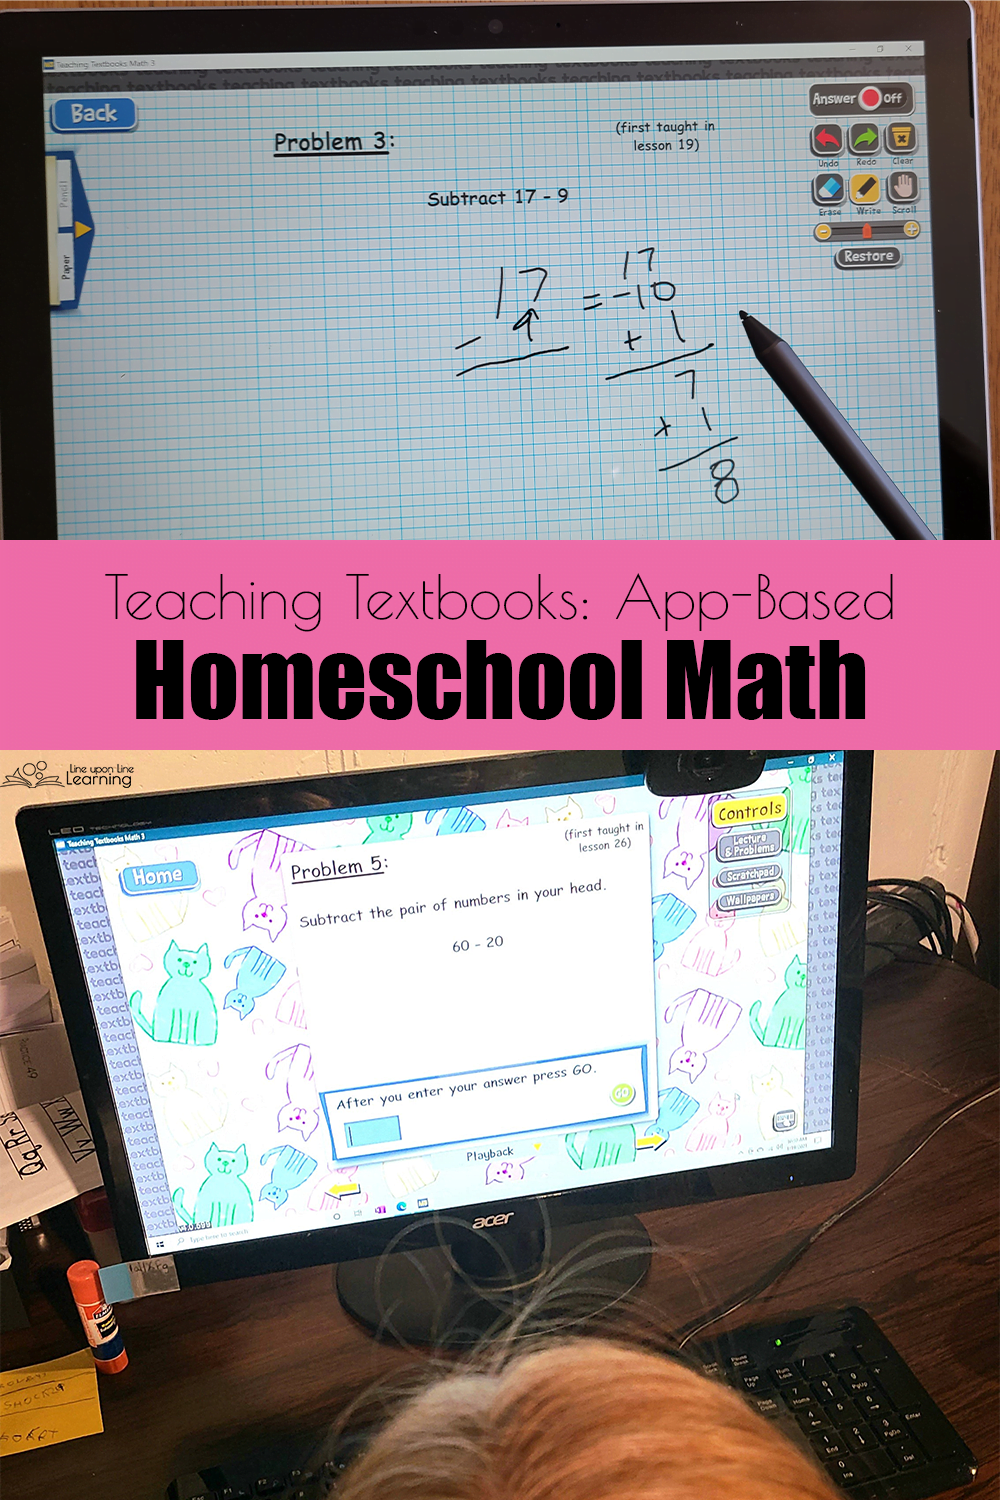 My daughter can do her homeschool math on the tablet or the computer.